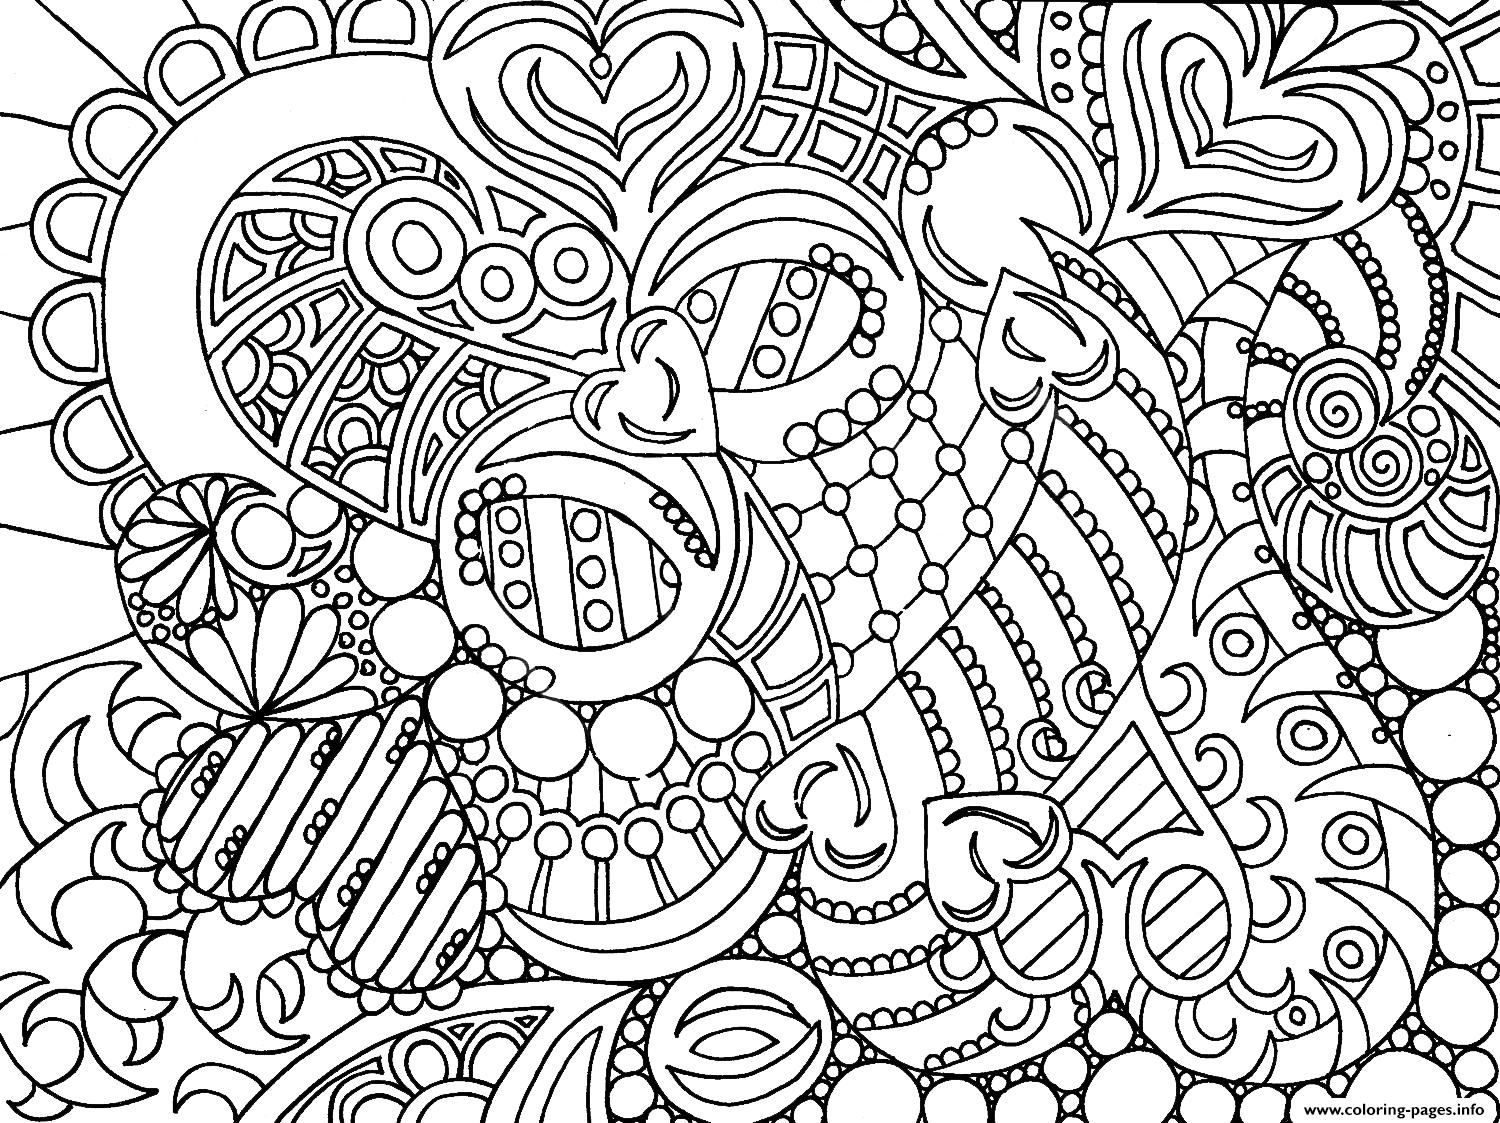 cool pictures to color and print 10 cool coloring pages for boys to print out for free to color pictures cool print and